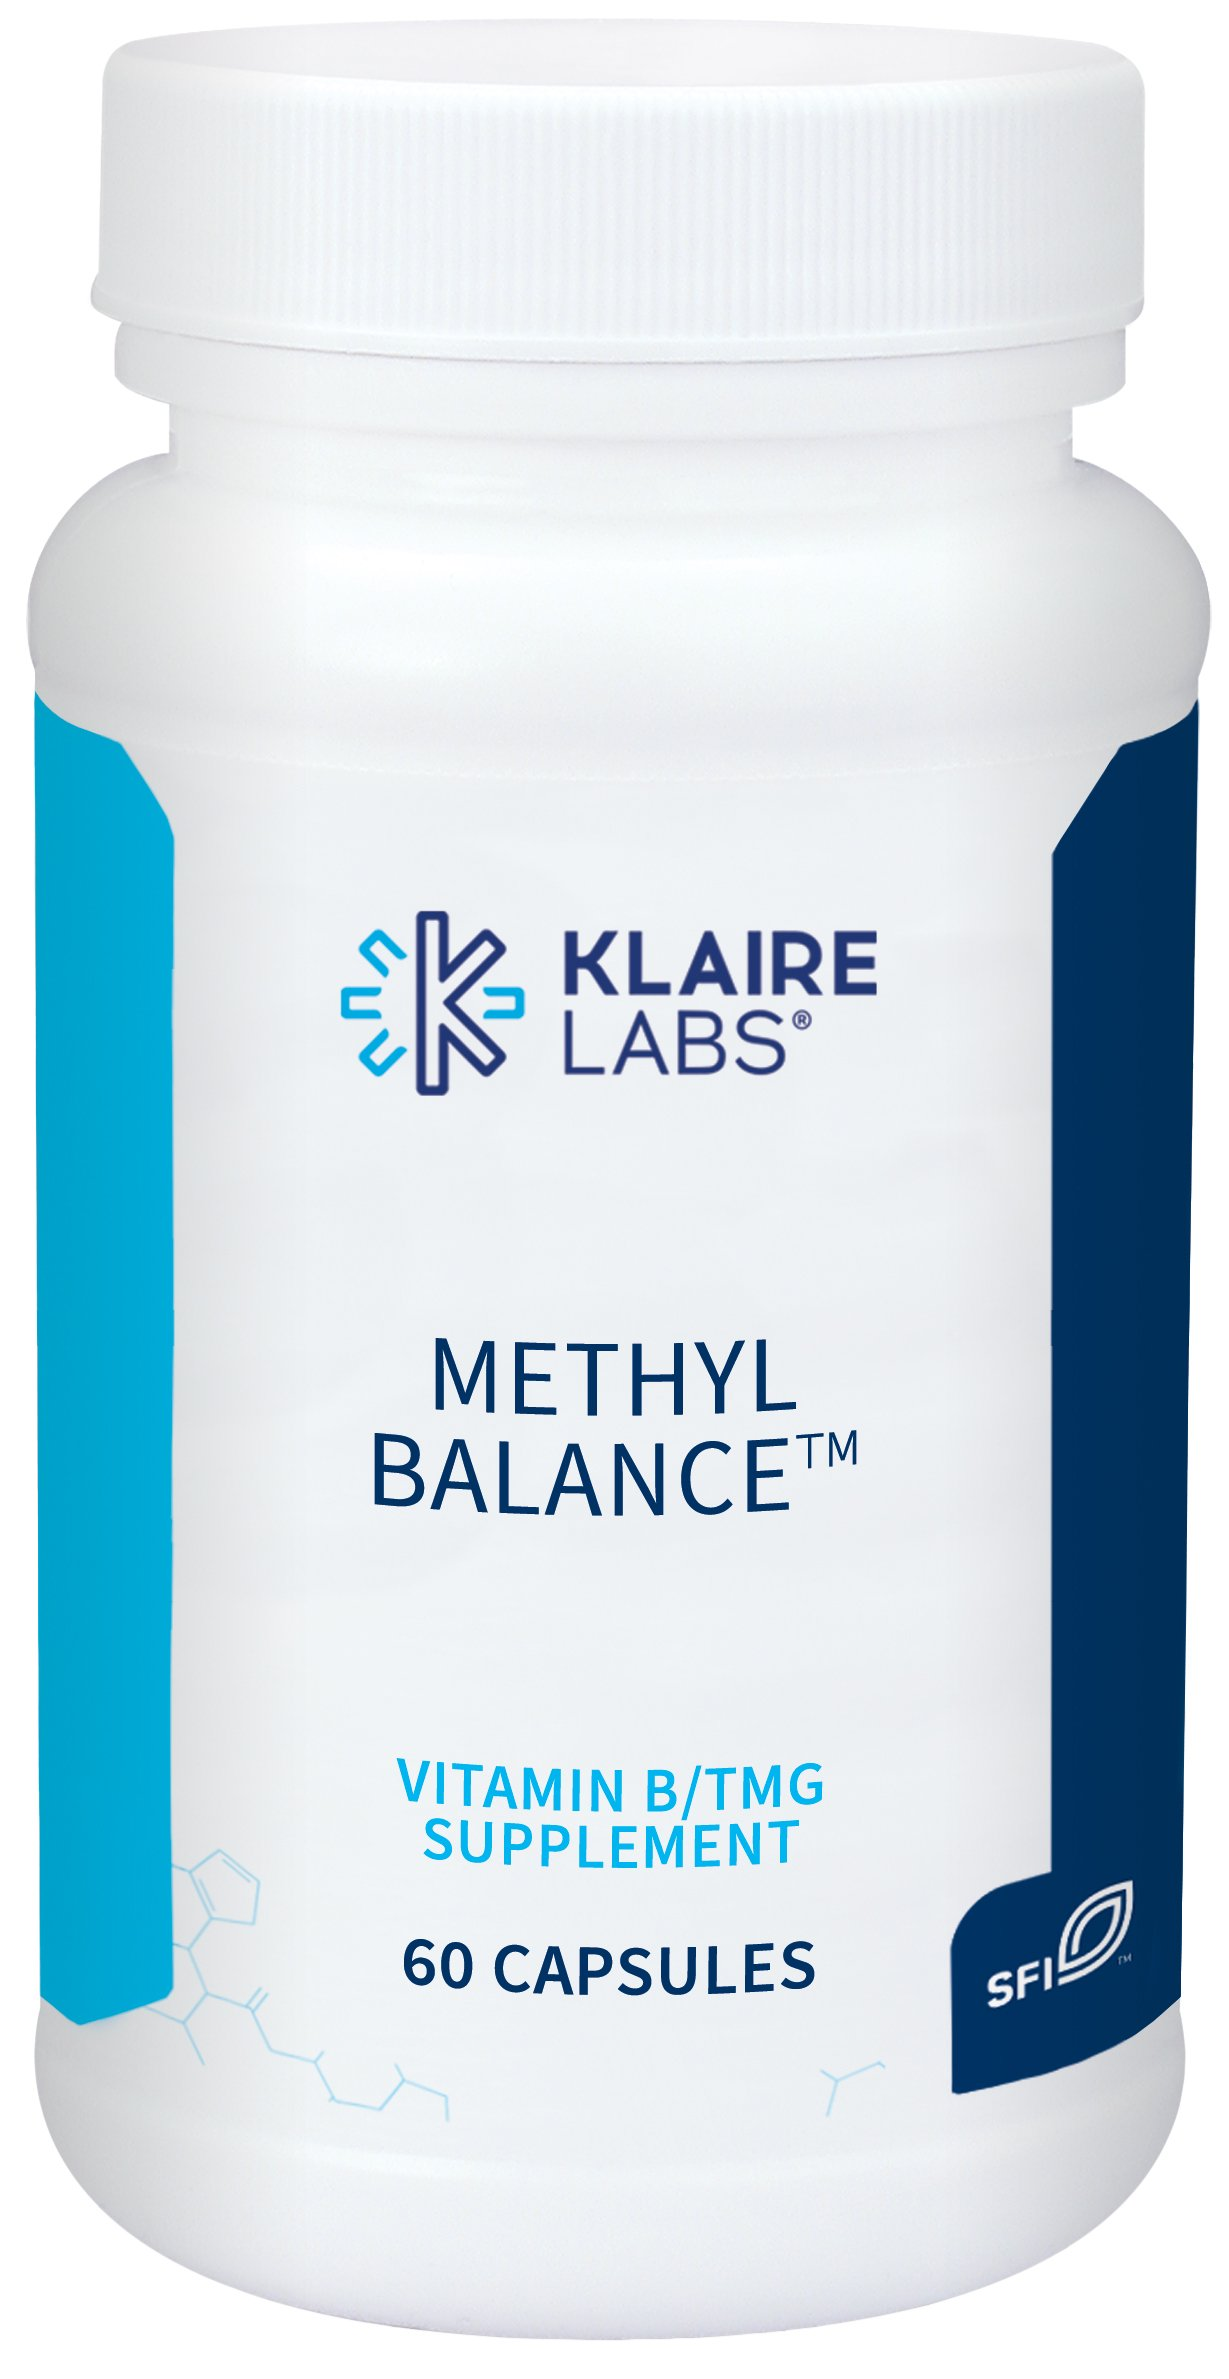 Klaire Labs (ProThera) Methyl Balance - Methylation Support with Active Folate, B2, B12, B6 and TMG (60 Capsules) by Klaire Labs